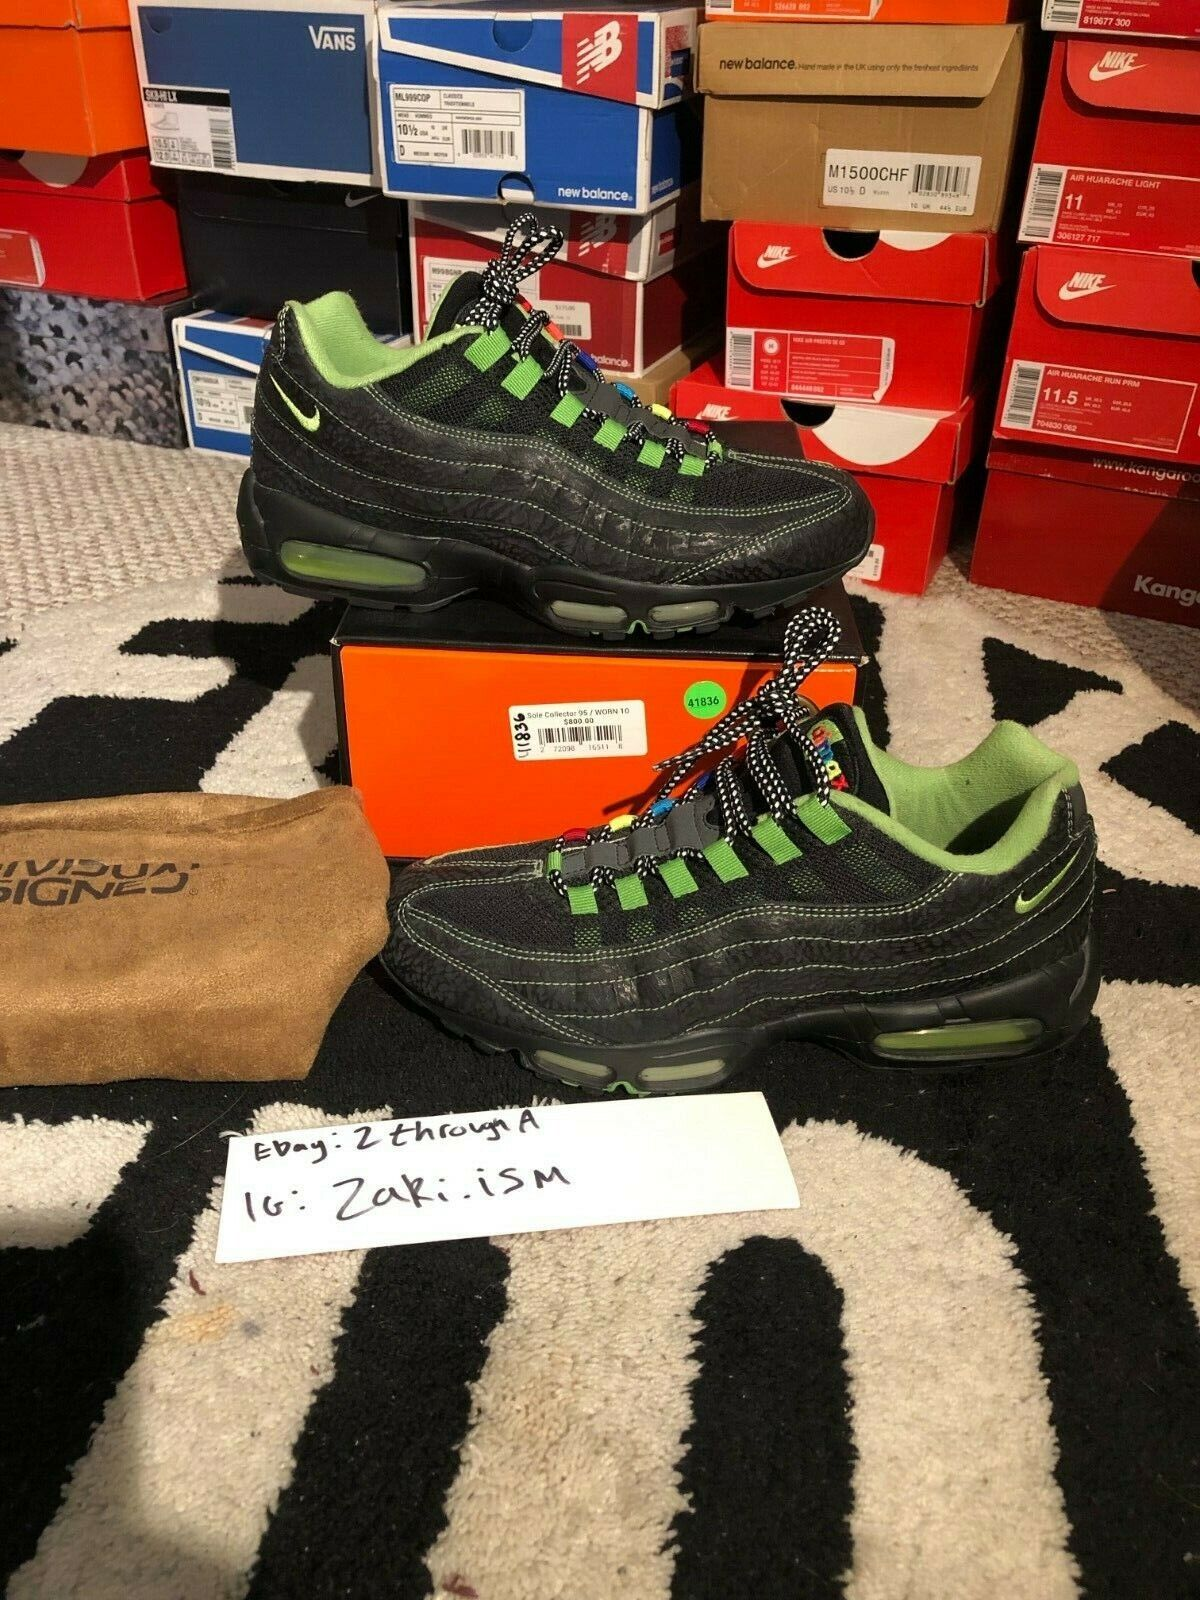 Nike Air Cowboy 10 size Collector Sole 95 max 4e42fubwy62643